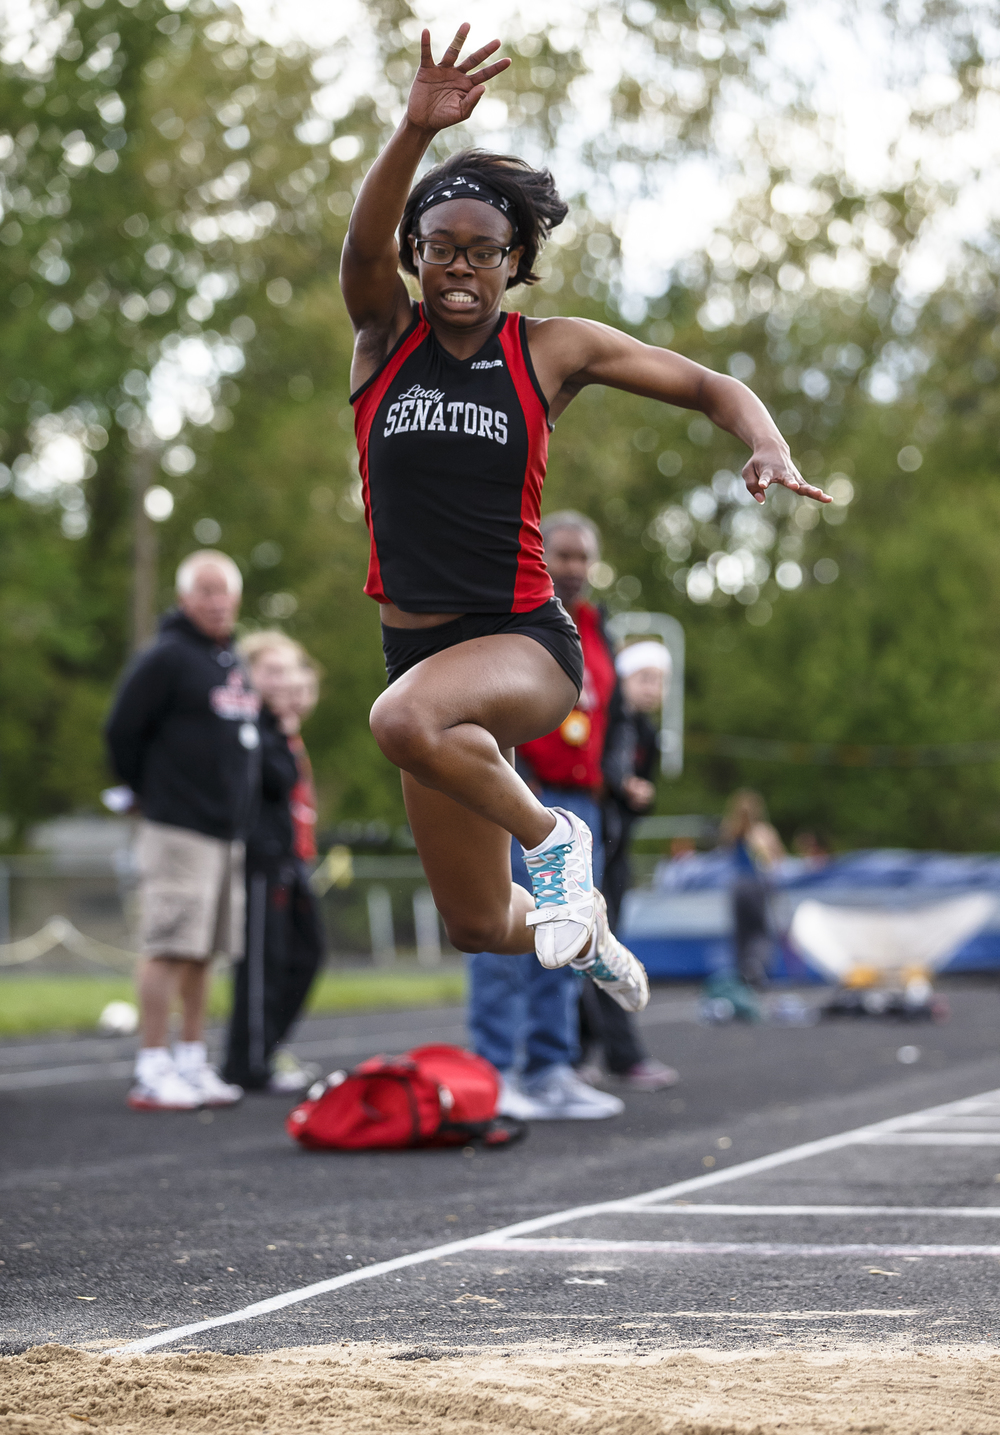 Springfield's Chieme Udaku broke the school triple jump record with a winning leap of 35-7 during the Girls City track and field meet at Southeast High School, Thursday, April 28, 2016, in Springfield, Ill. Justin L. Fowler/The State Journal-Register